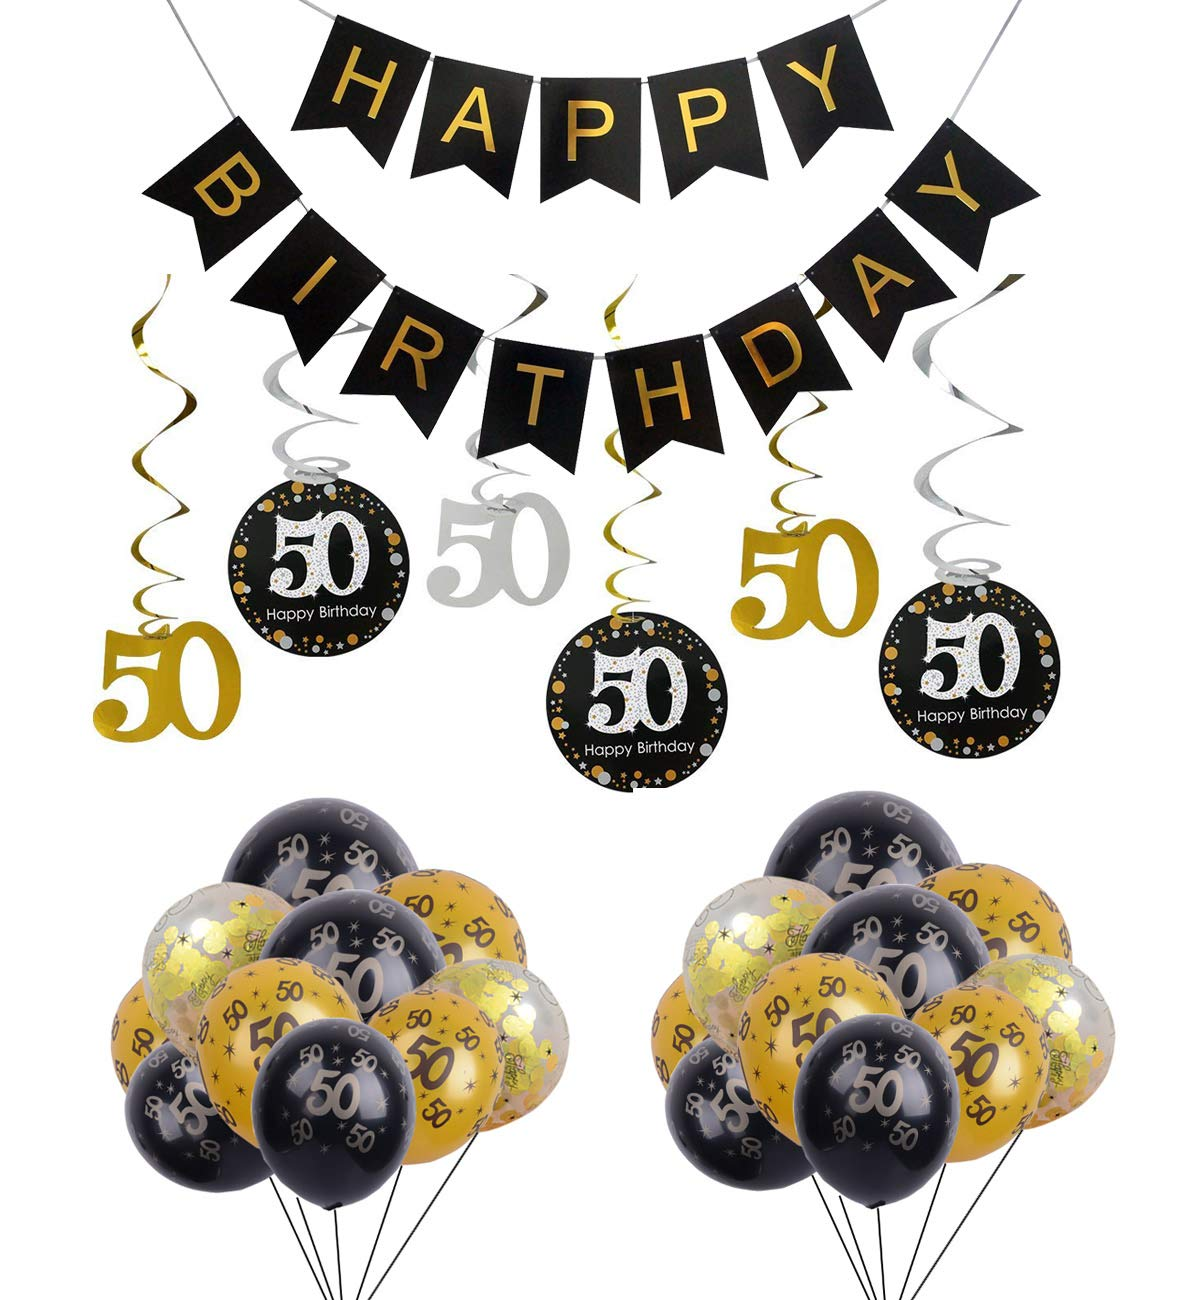 50th Birthday Party Decorations Happy Banner With Foil Hanging